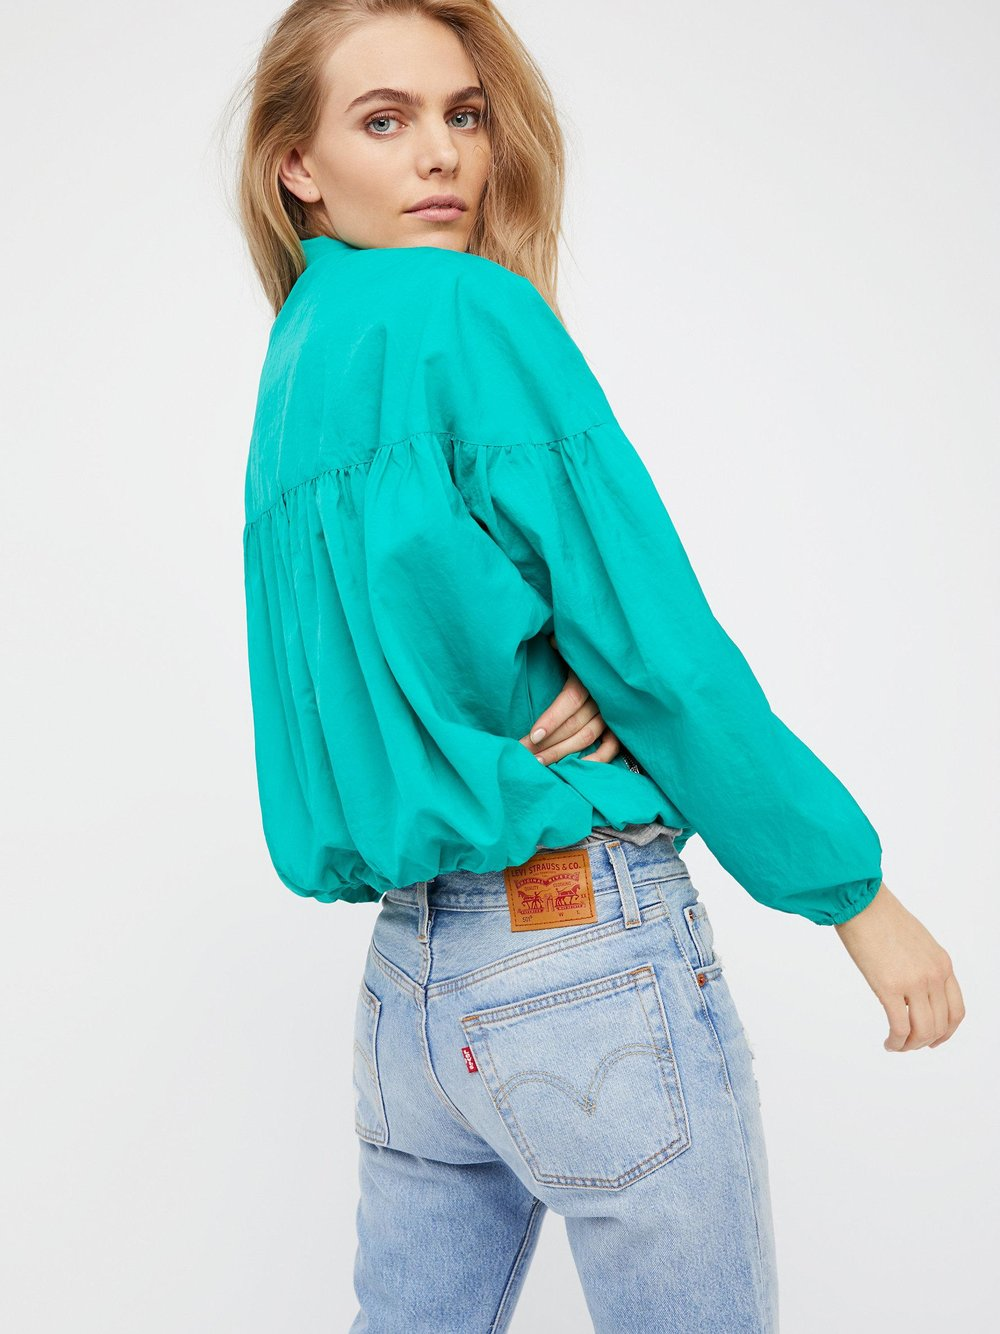 free-people-now-or-never-nylon-bomber-teal.jpeg